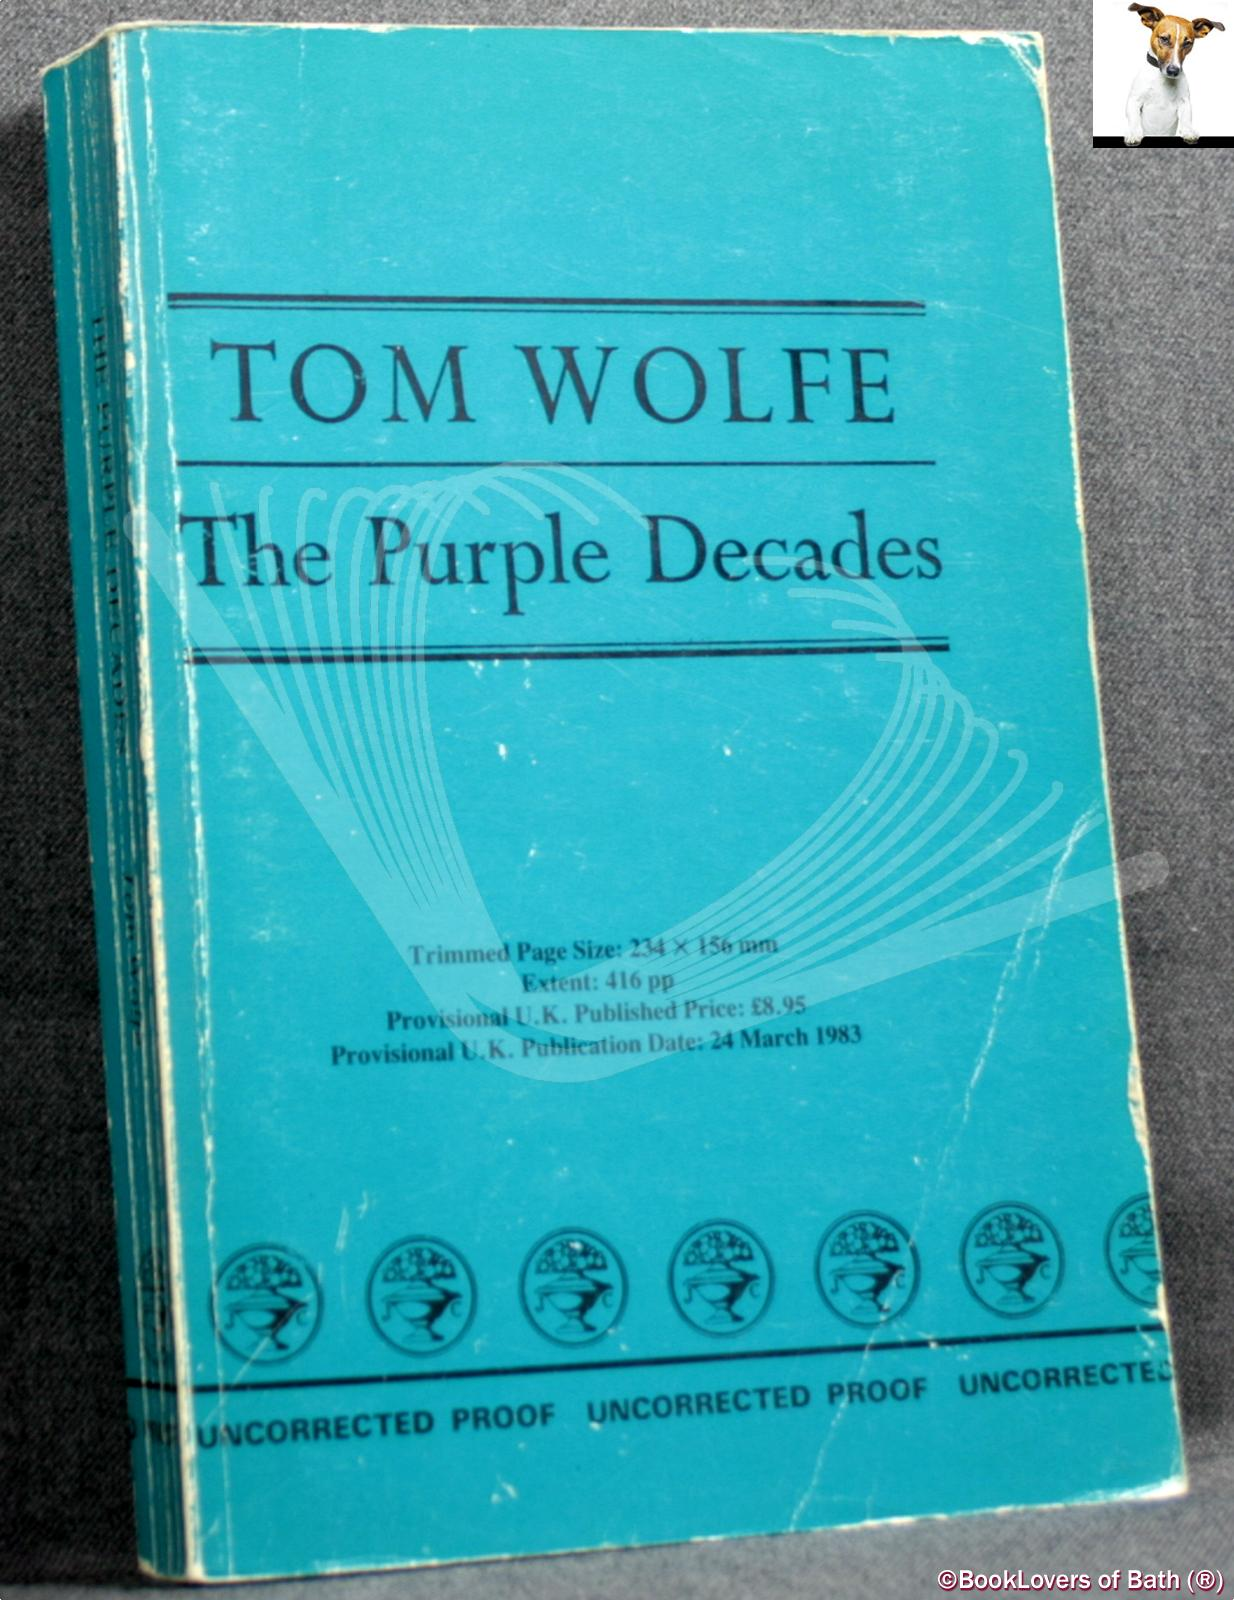 The Purple Decades - Tom Wolfe